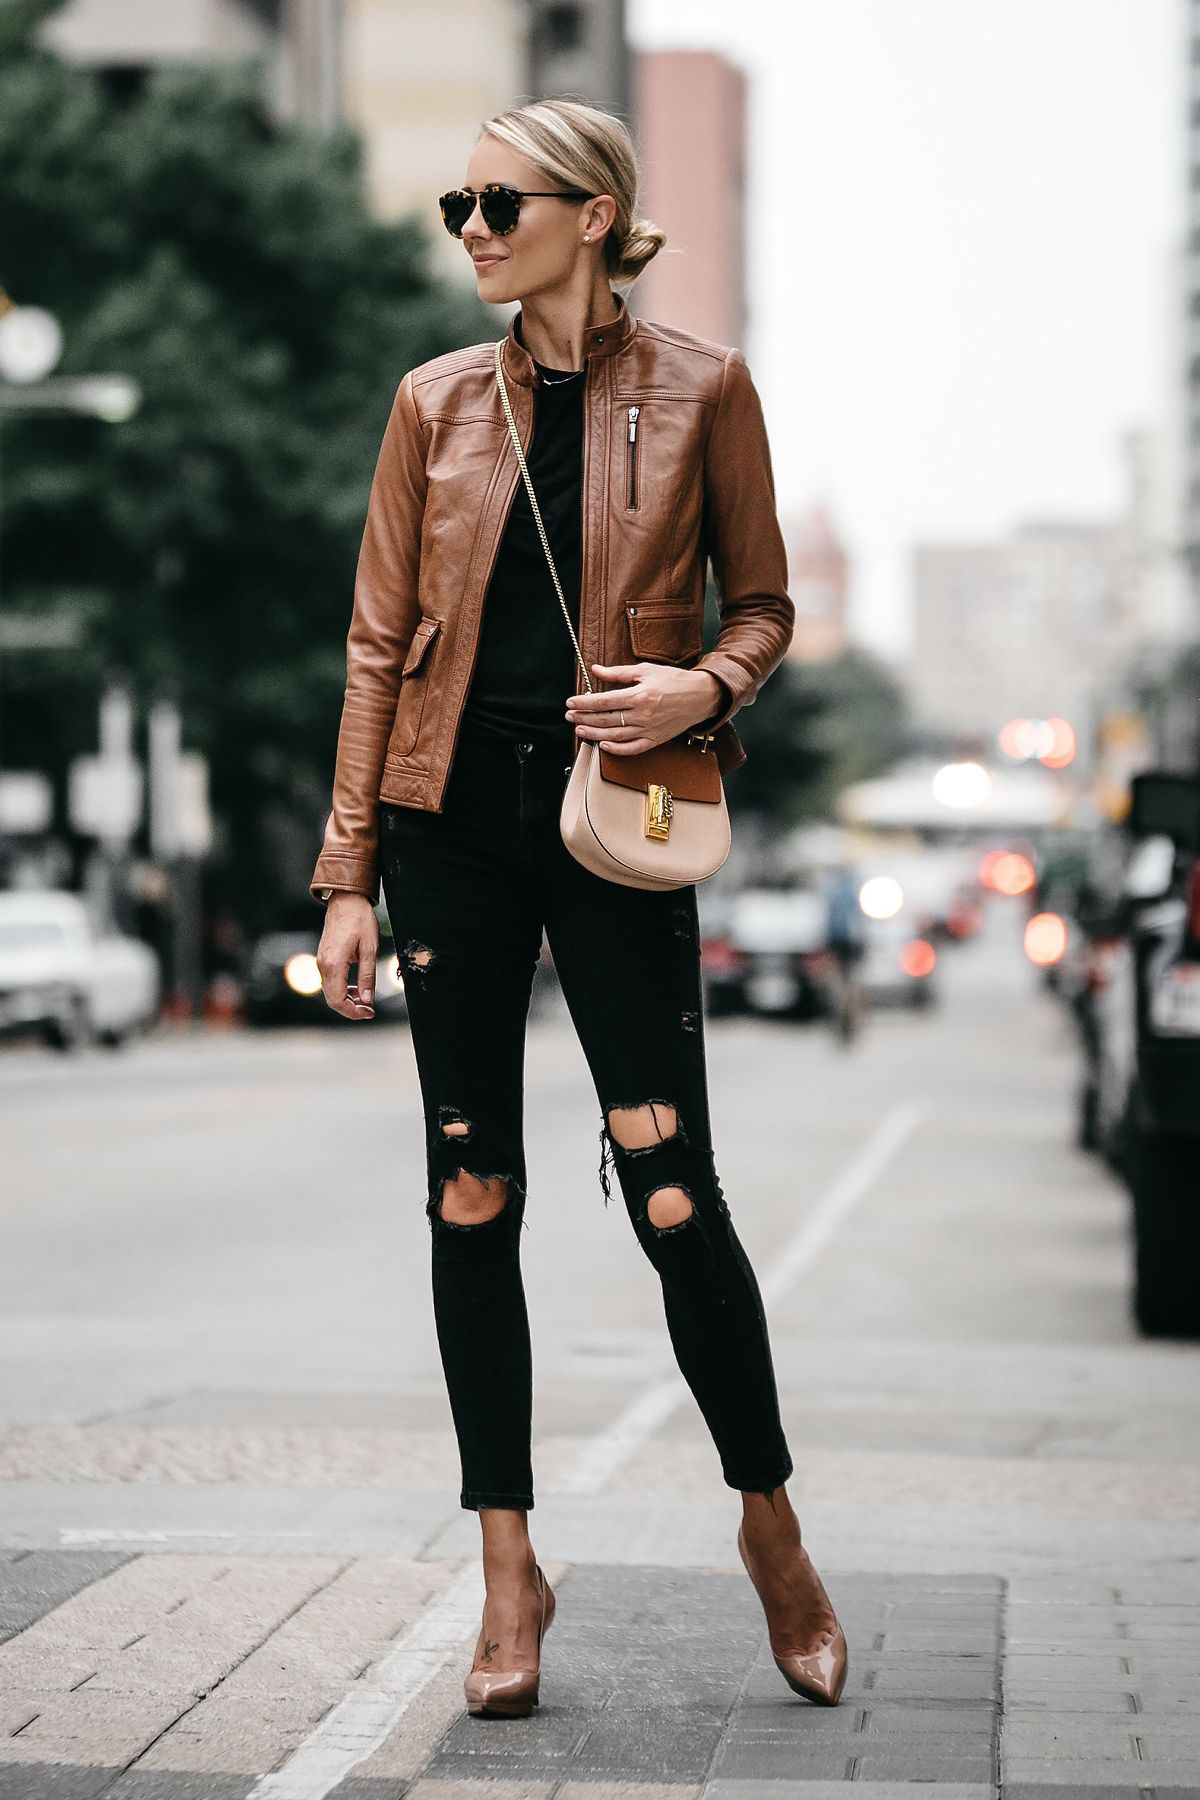 eaba1829cf Blonde Woman Wearing Tan Leather Moto Jacket Black Ripped Skinny Jeans  Outfit Chloe Drew Handbag Christian Louboutin Nude Pumps Fashion Jackson  Dallas ...